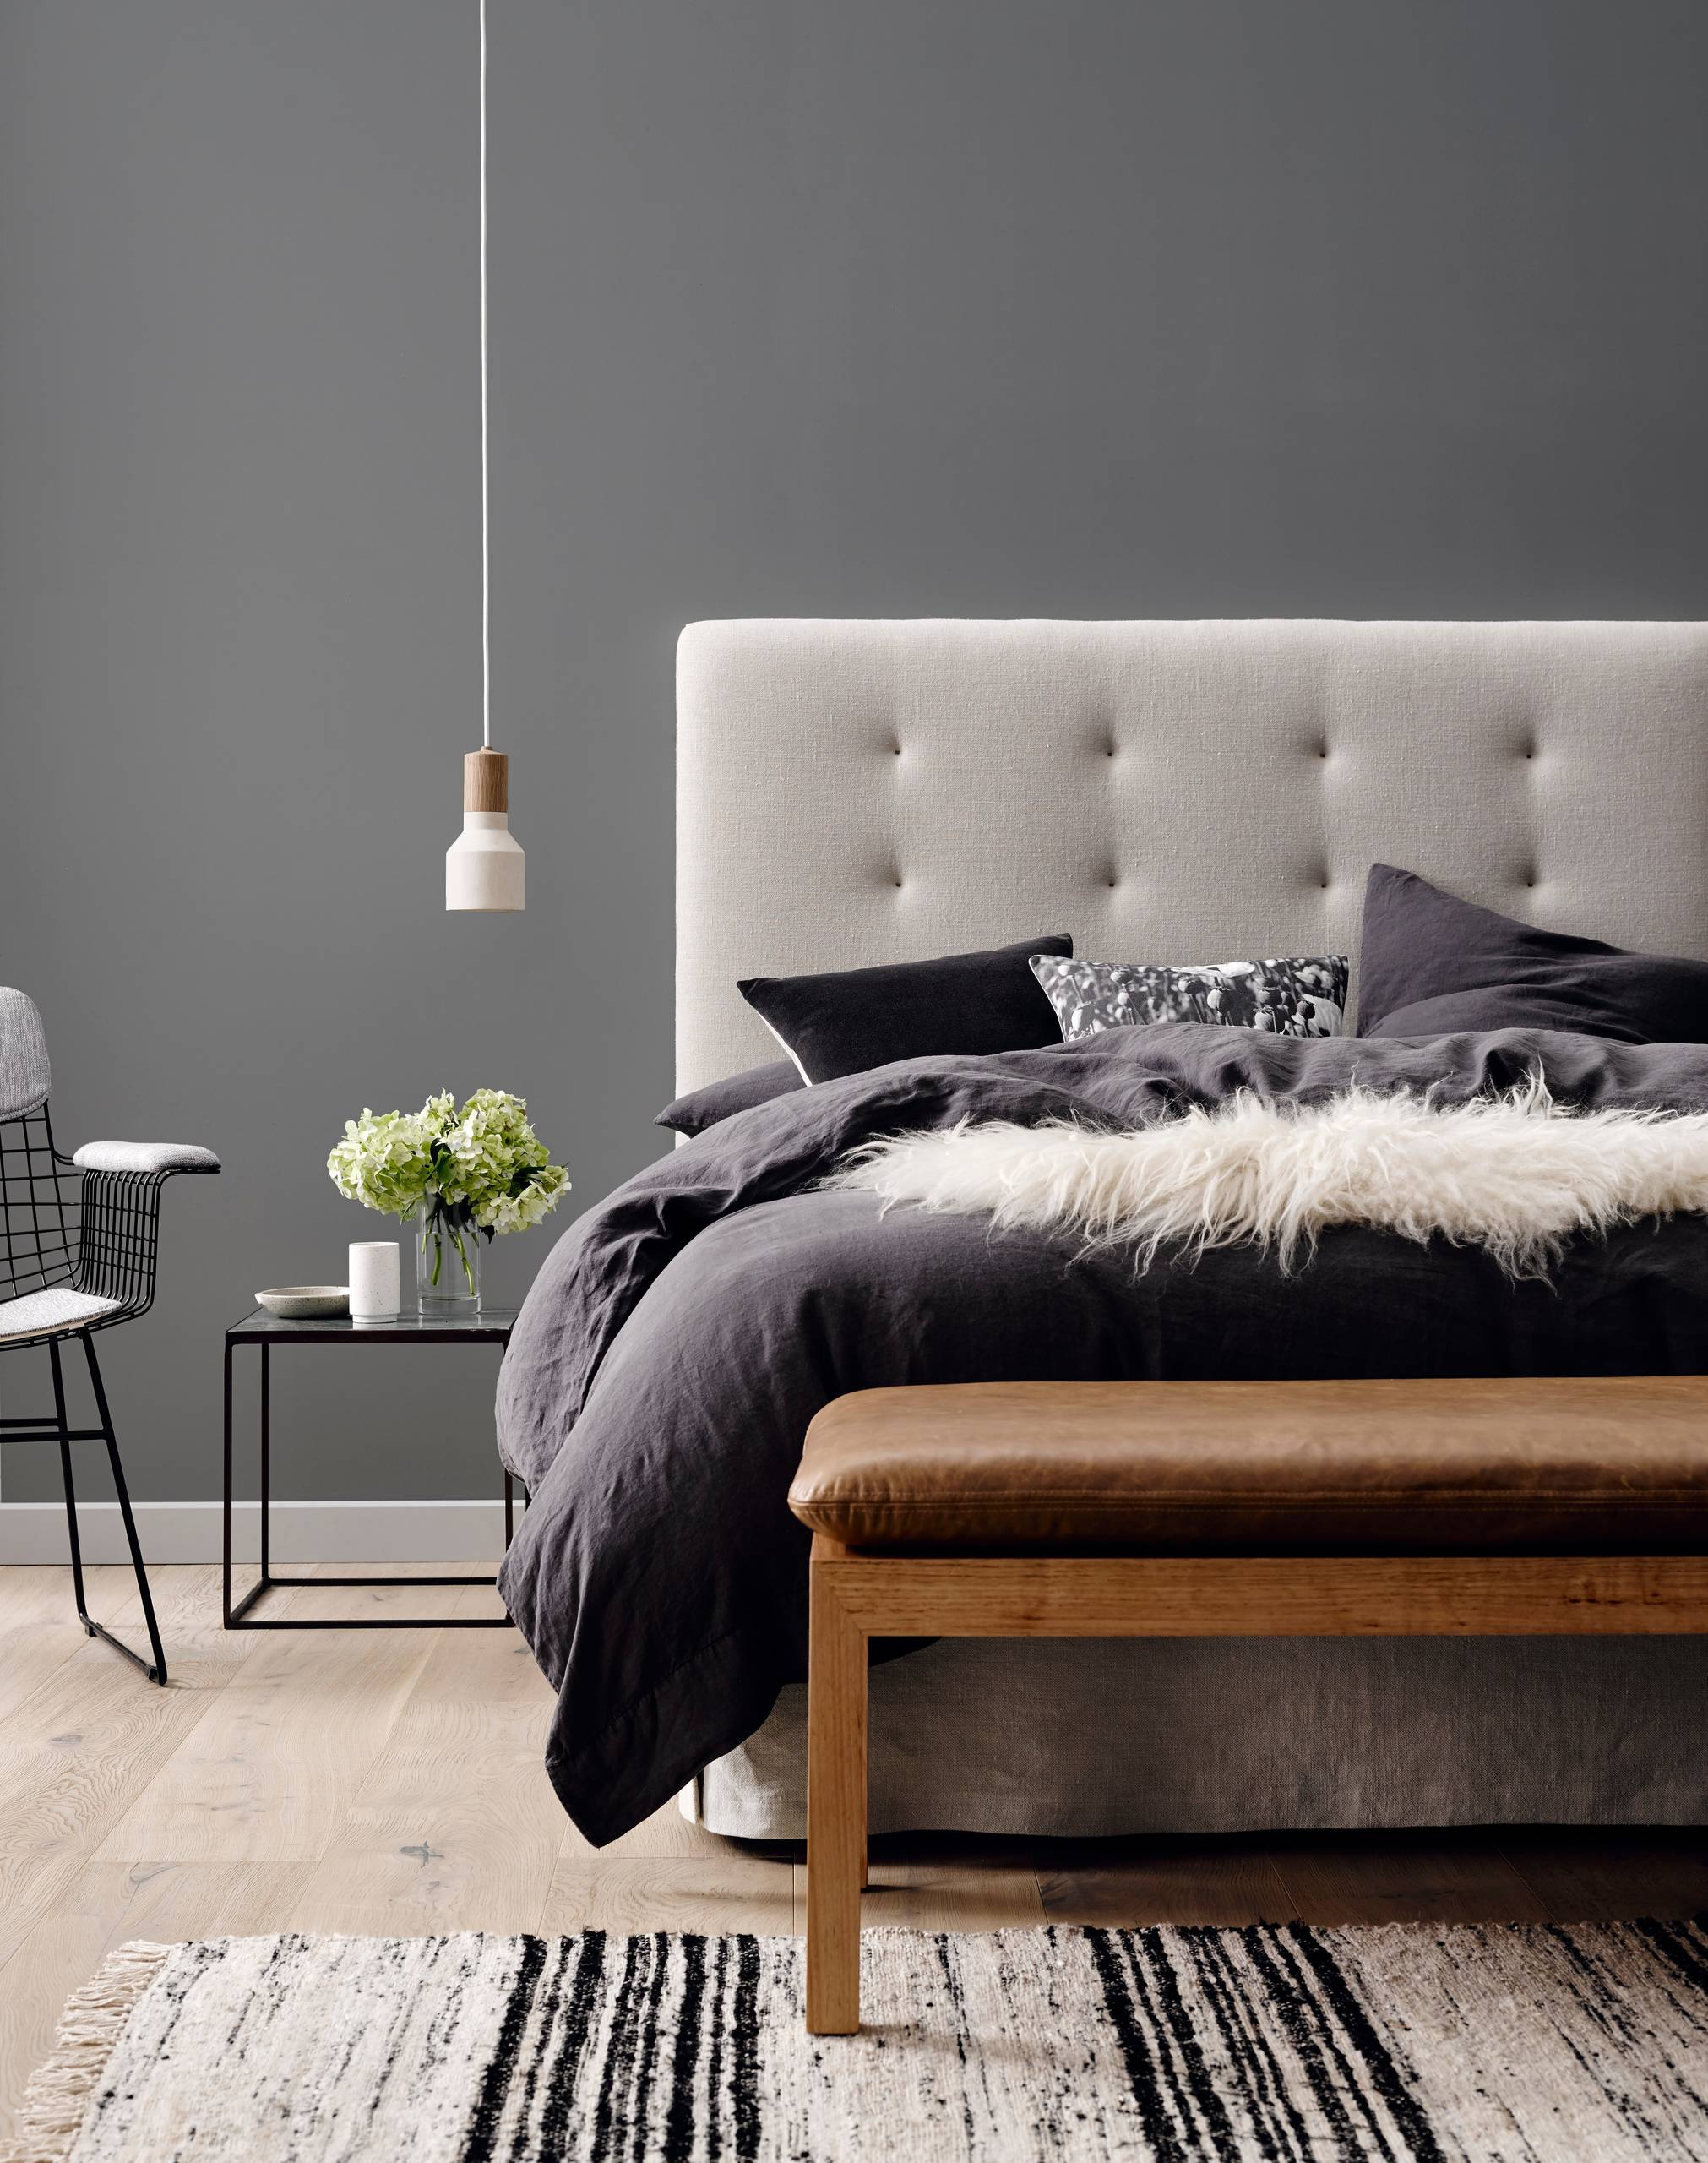 11 Beautiful Modern Bedroom Pictures & Ideas - January, 11  Houzz